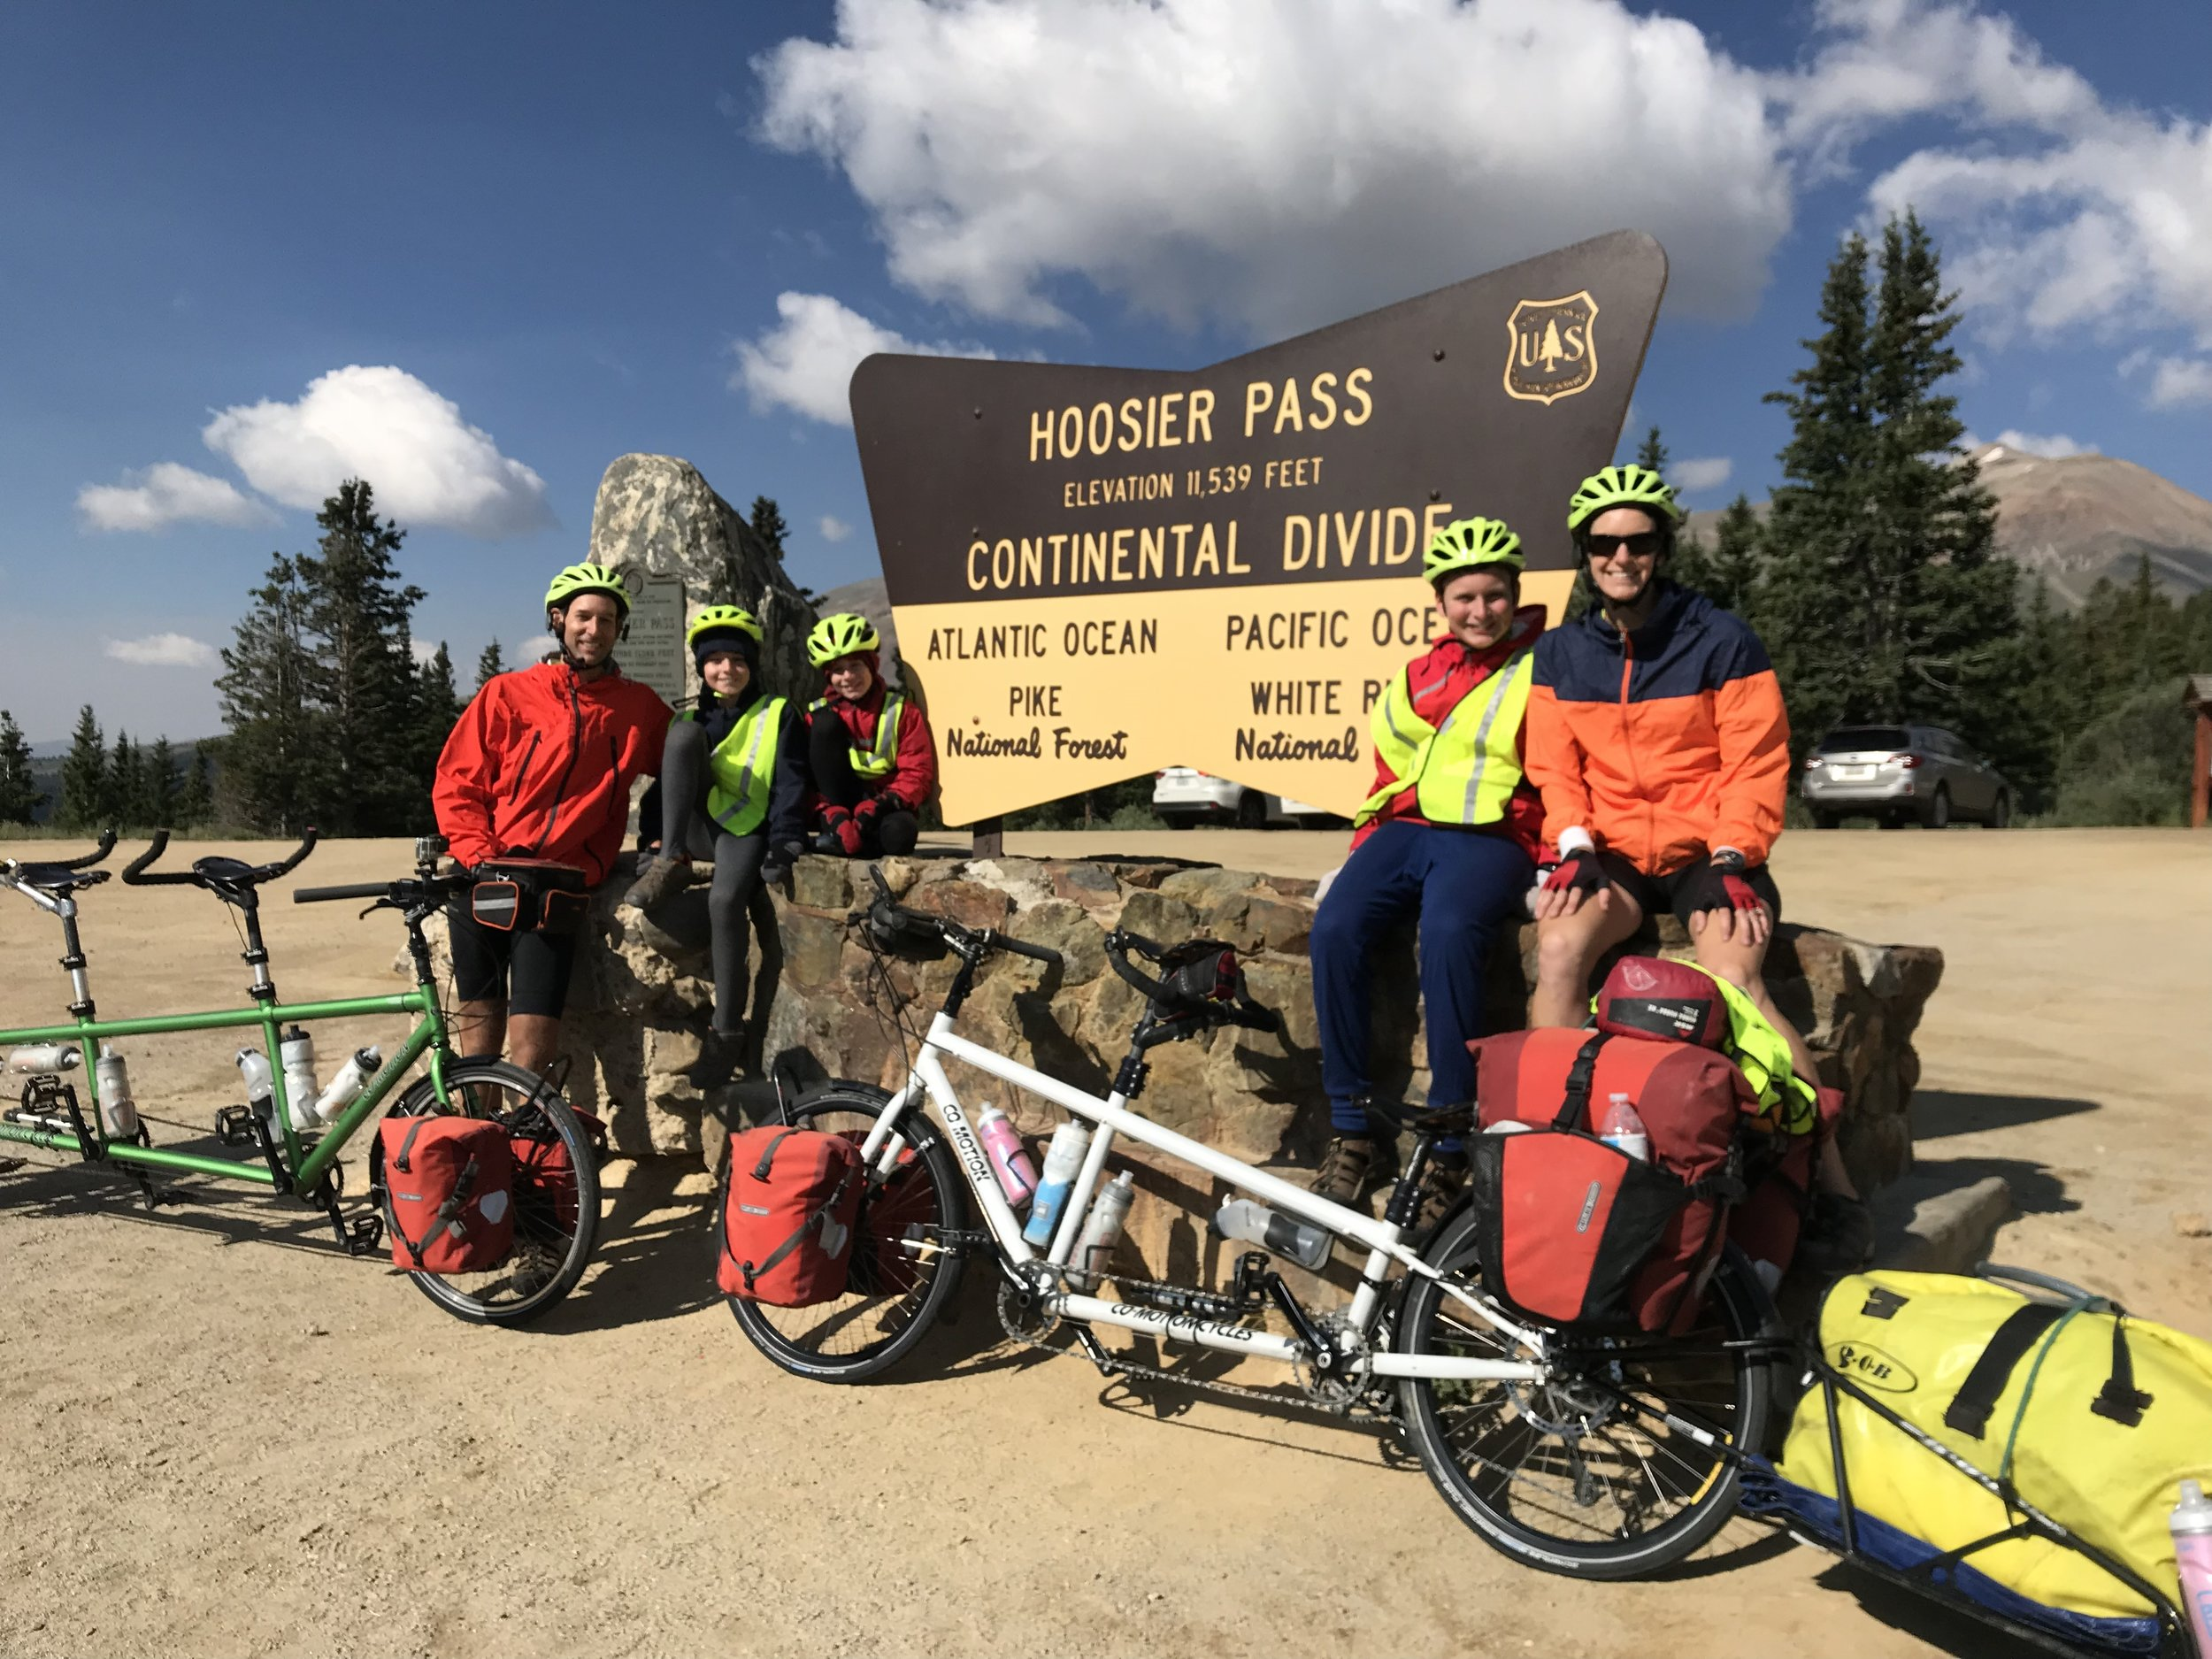 Here is our victory picture after making it up to Hoosier Pass Summit. Notice the socks on the boys' hands and leggings on their legs. It was quite cold and windy!